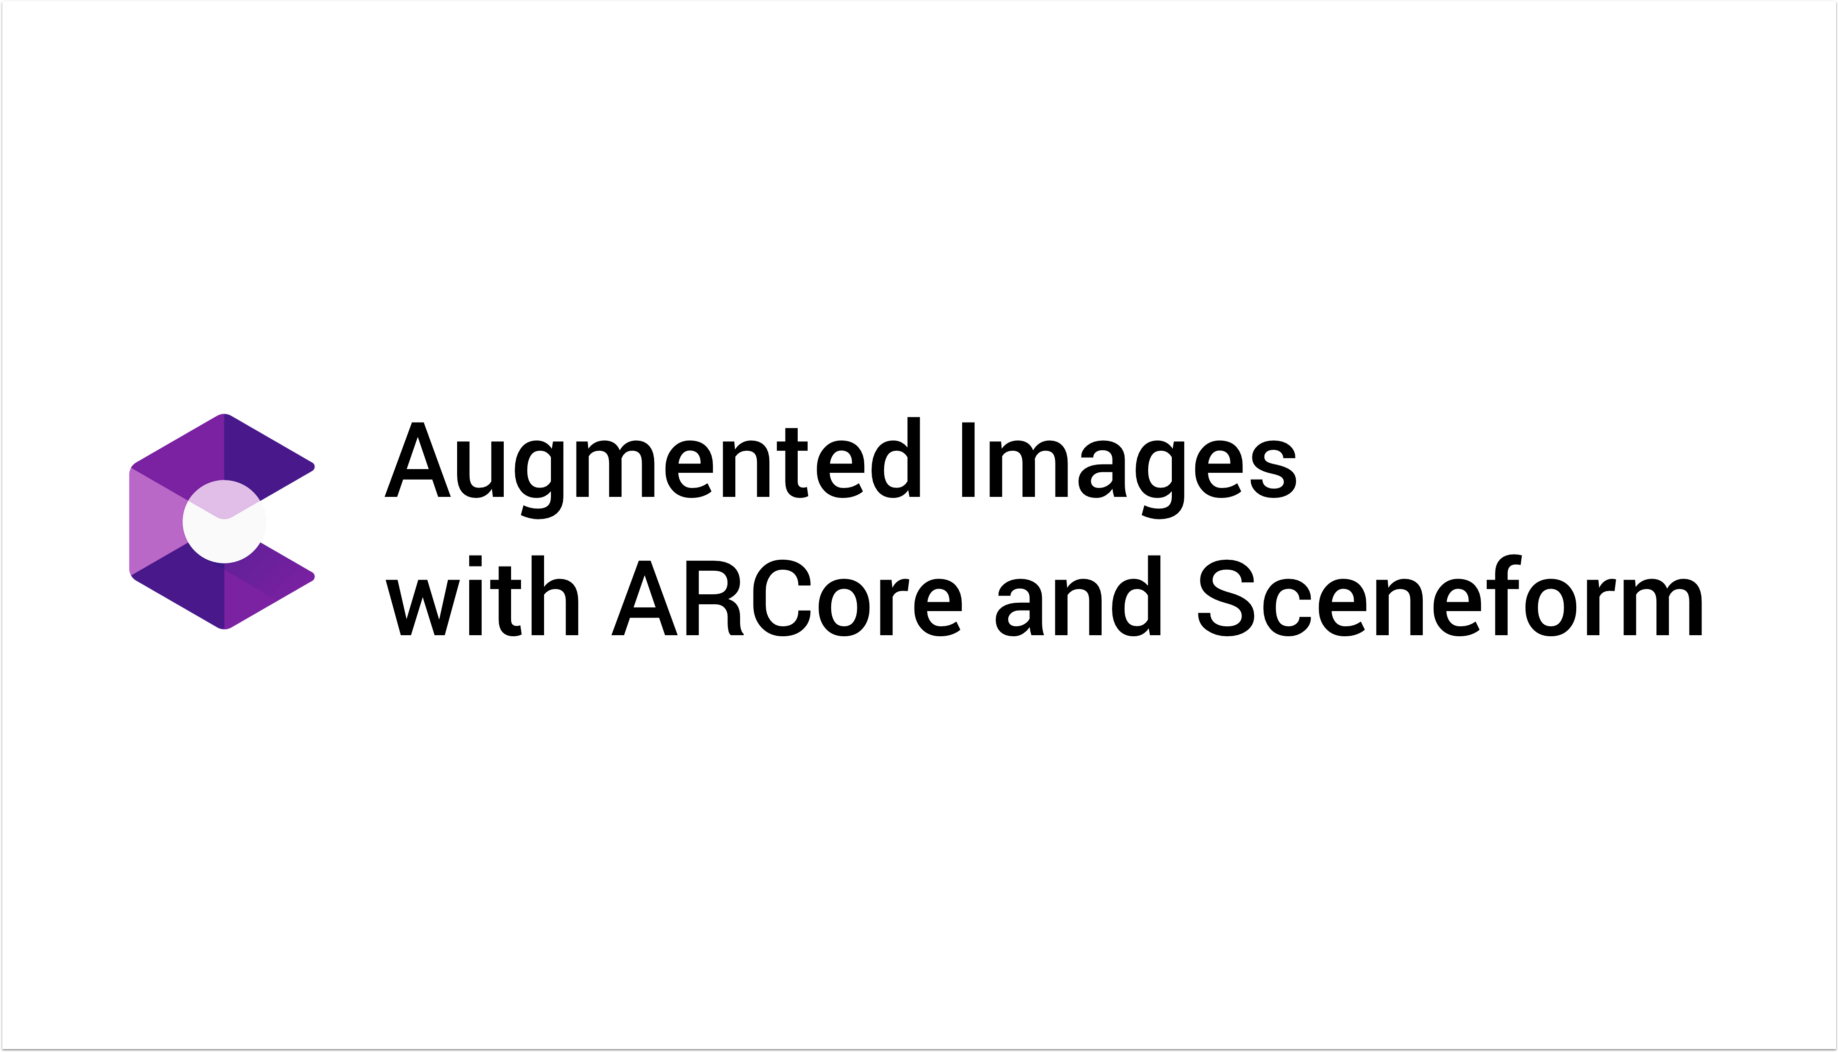 Augmented Images with ARCore and Sceneform - ProAndroidDev